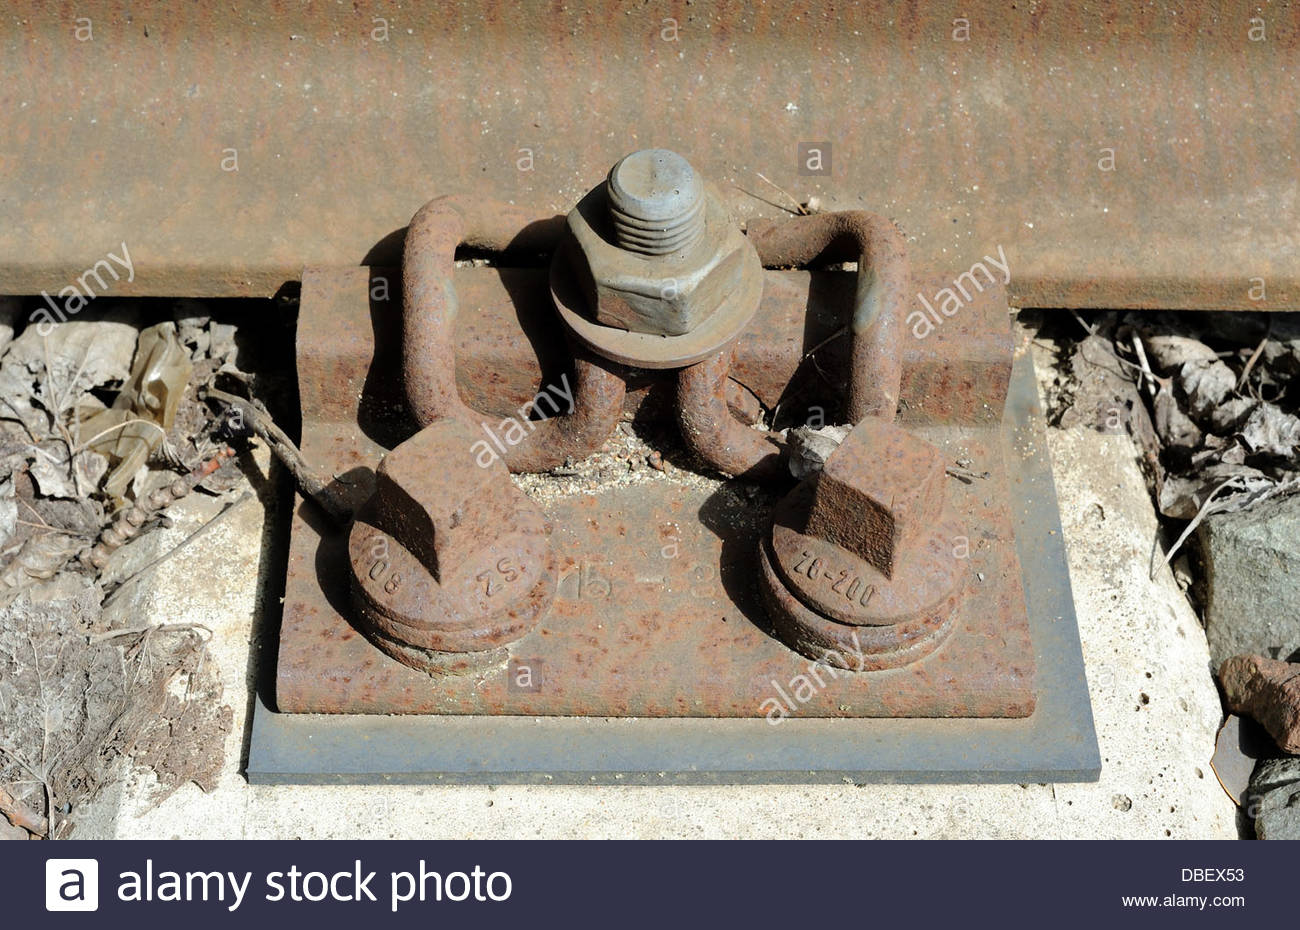 Amsterdam Railway rail attached to the sleeper using tension clamp fastening.  - Stock Image